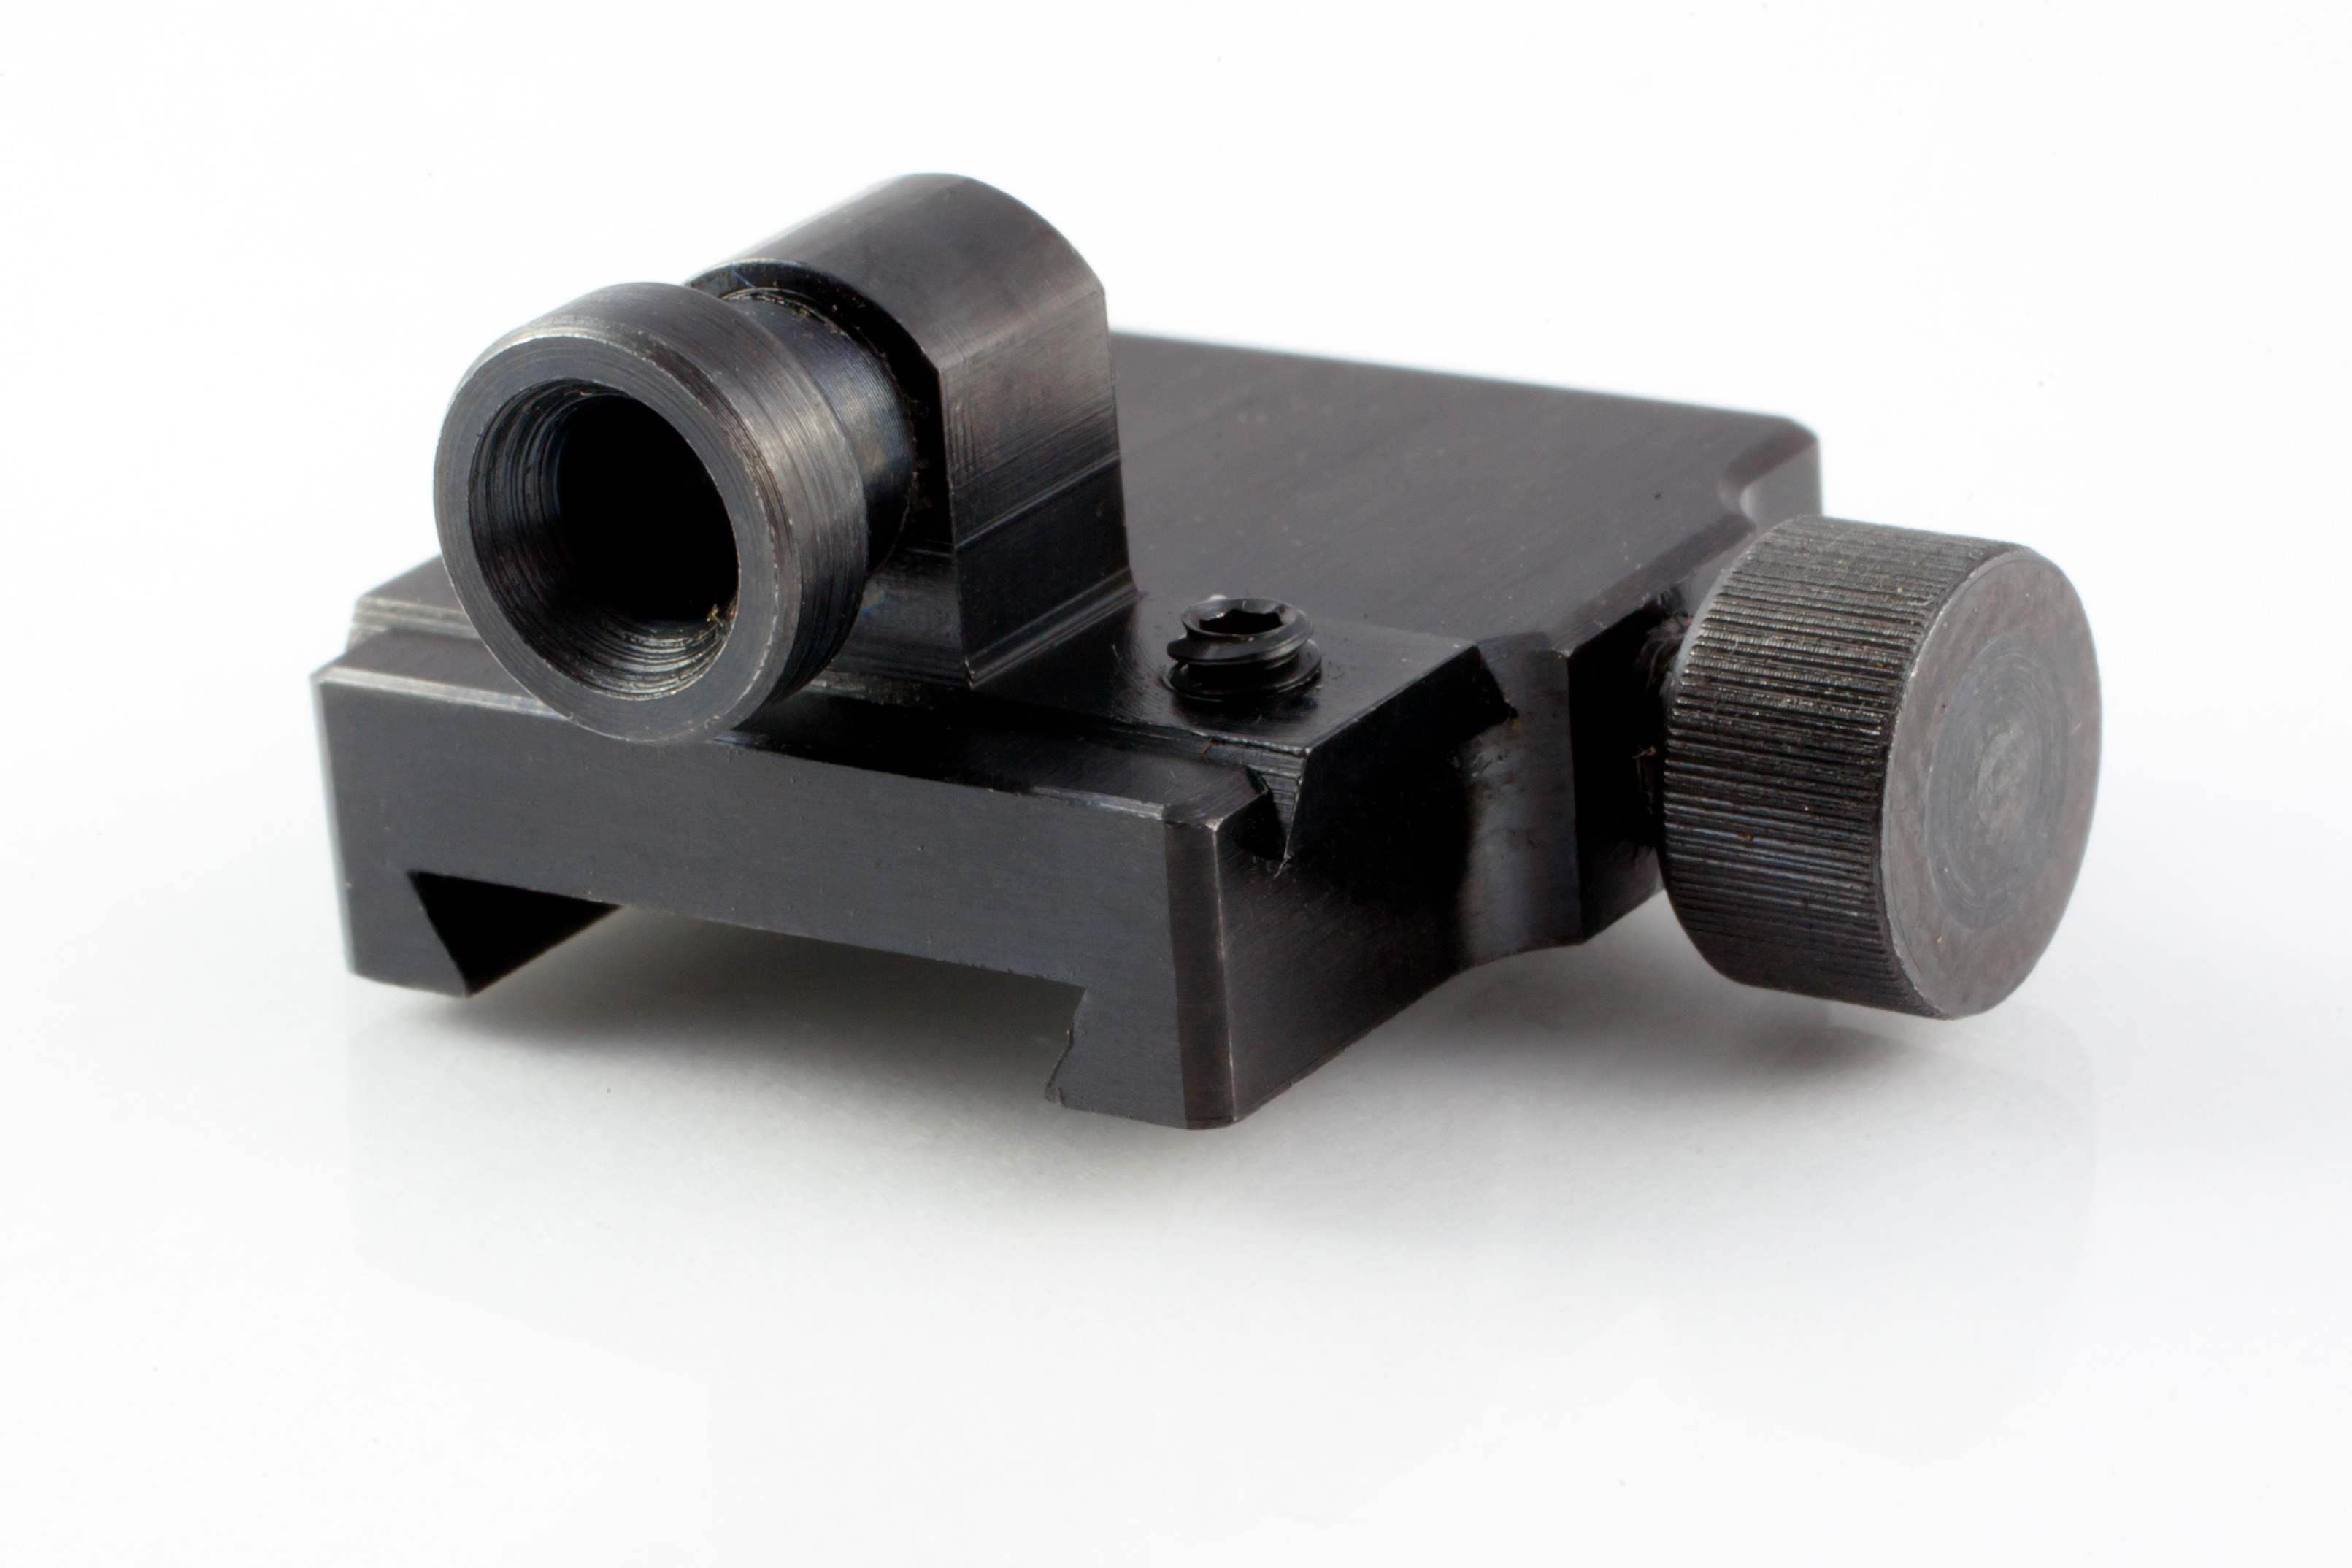 The Talley peep sight attaches to the rifle-scope base when the rifle-scope is detached. (Picture courtesy talleymanufacturing.com).